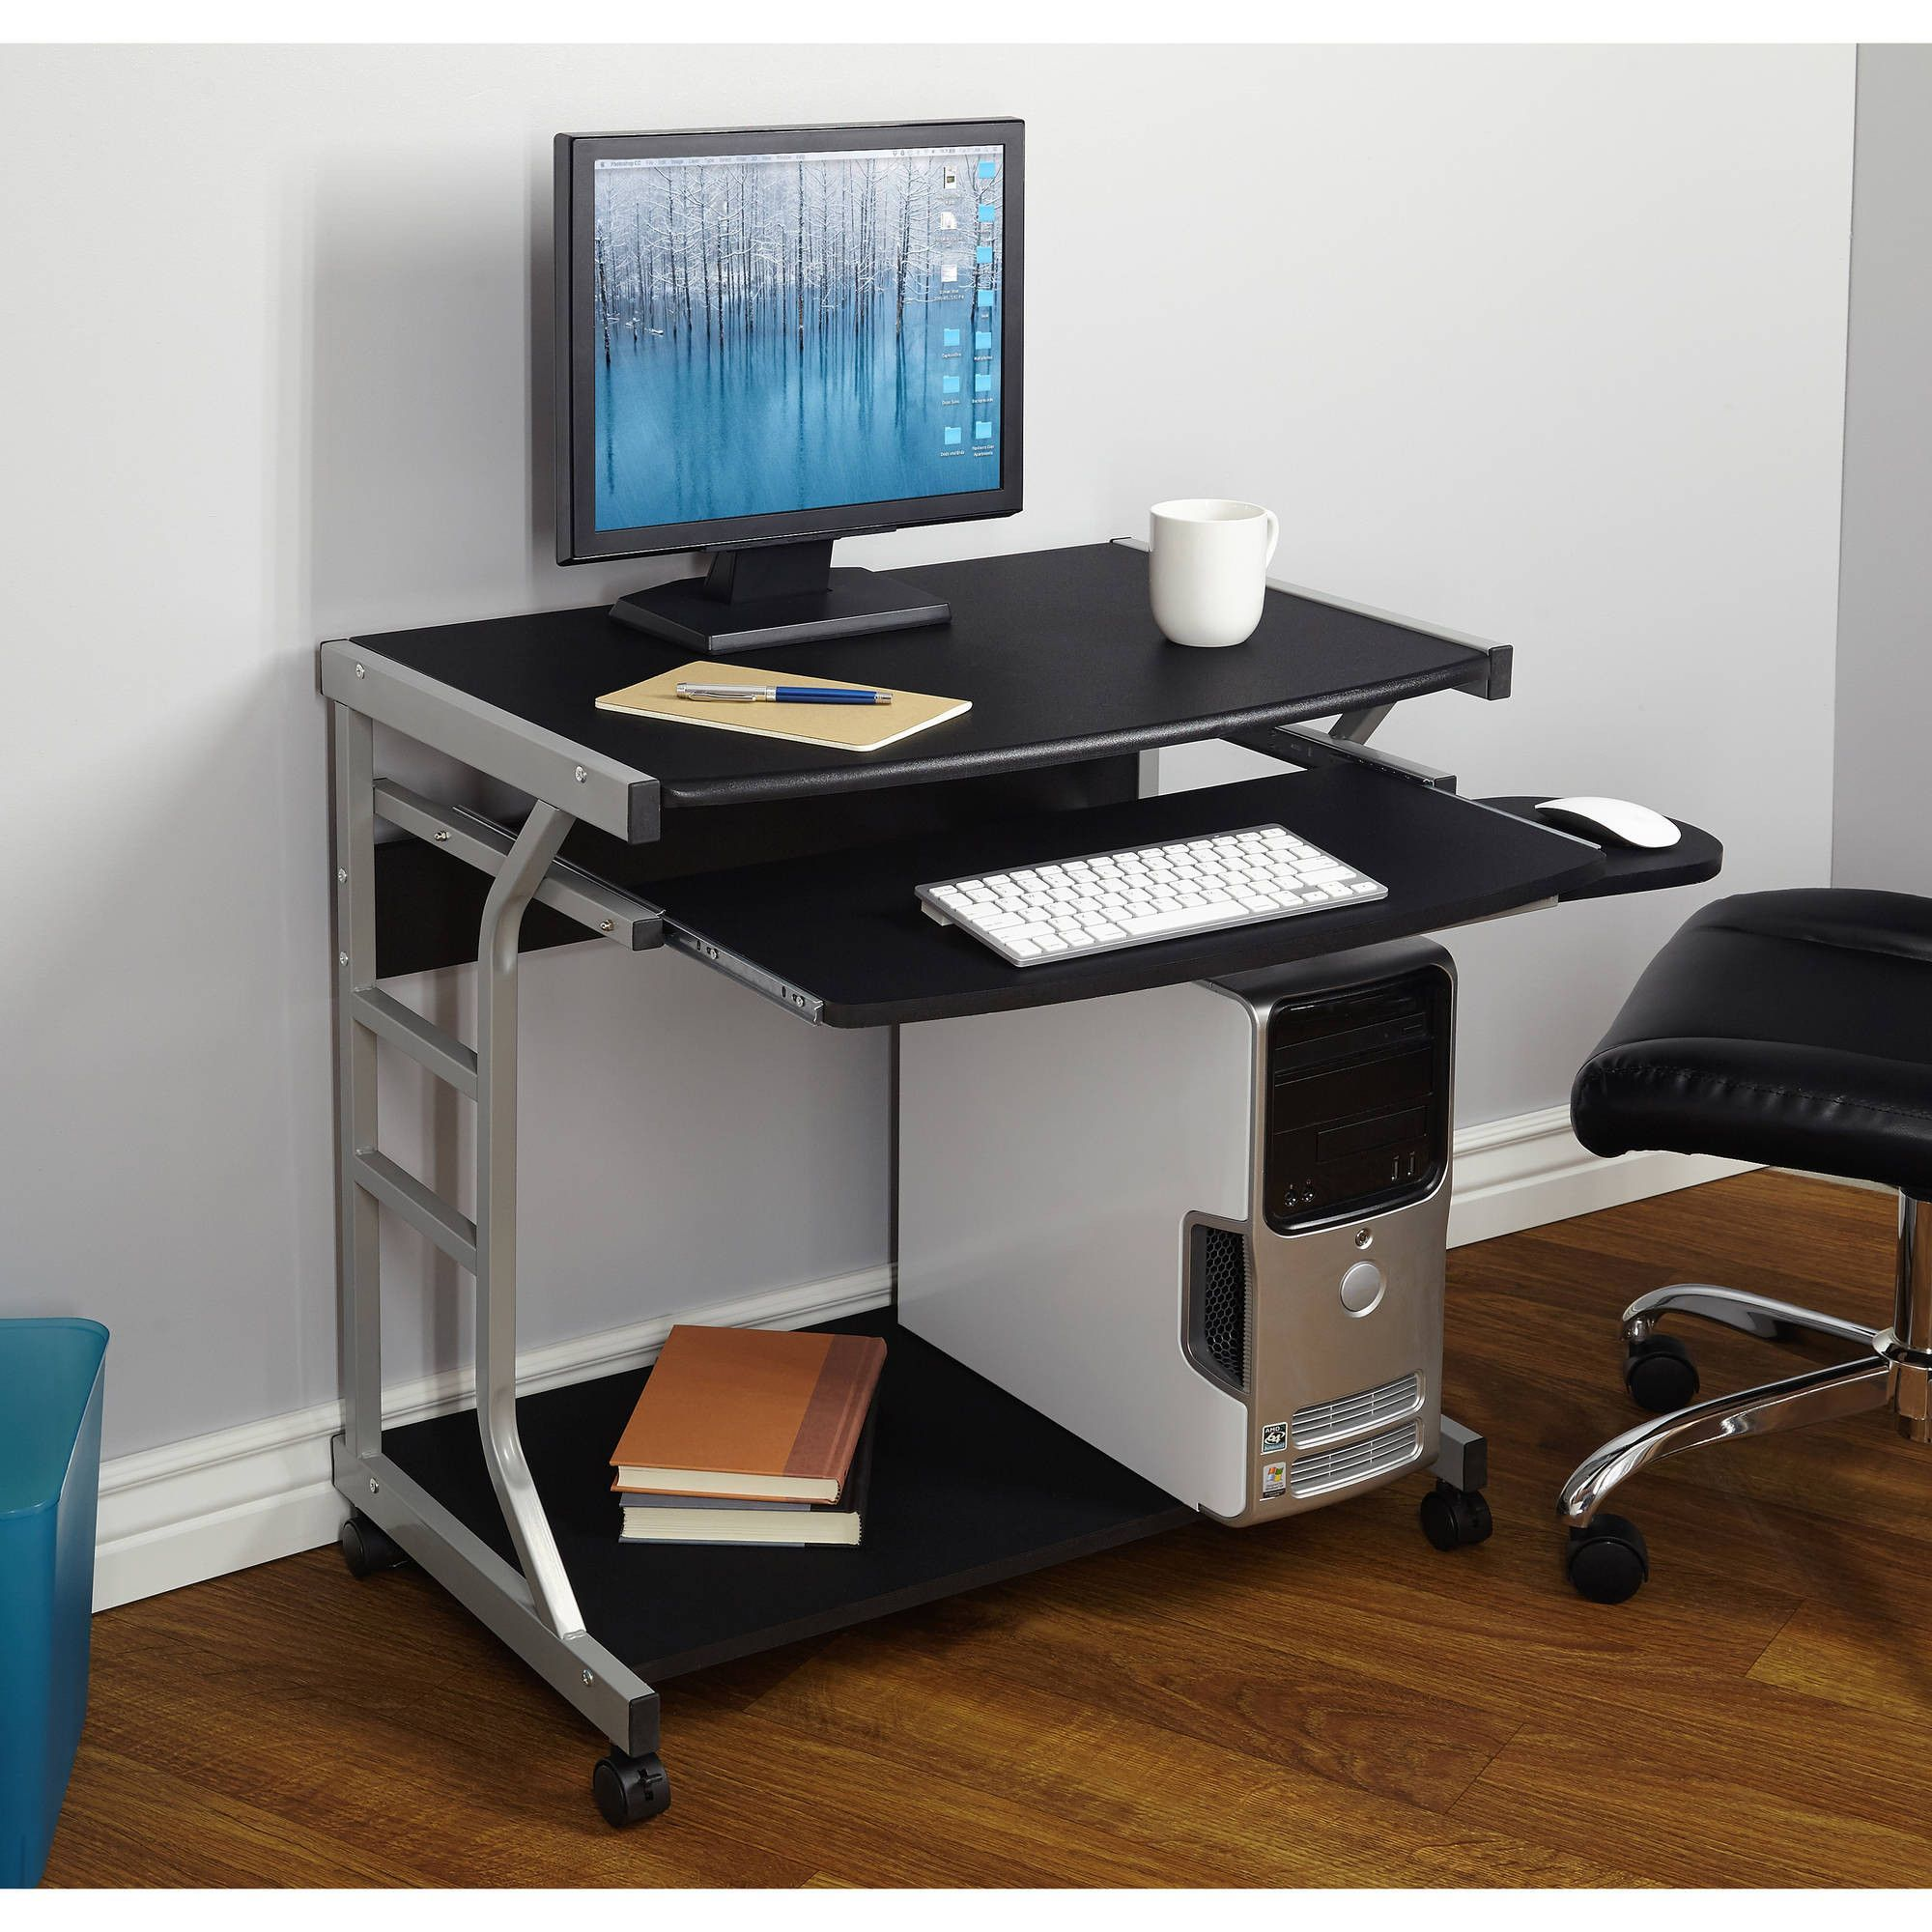 Small Compact Mobile Portable Student Computer Berkeley Desk With Wheels Furniture Mobile Computer Desk Computer Desk